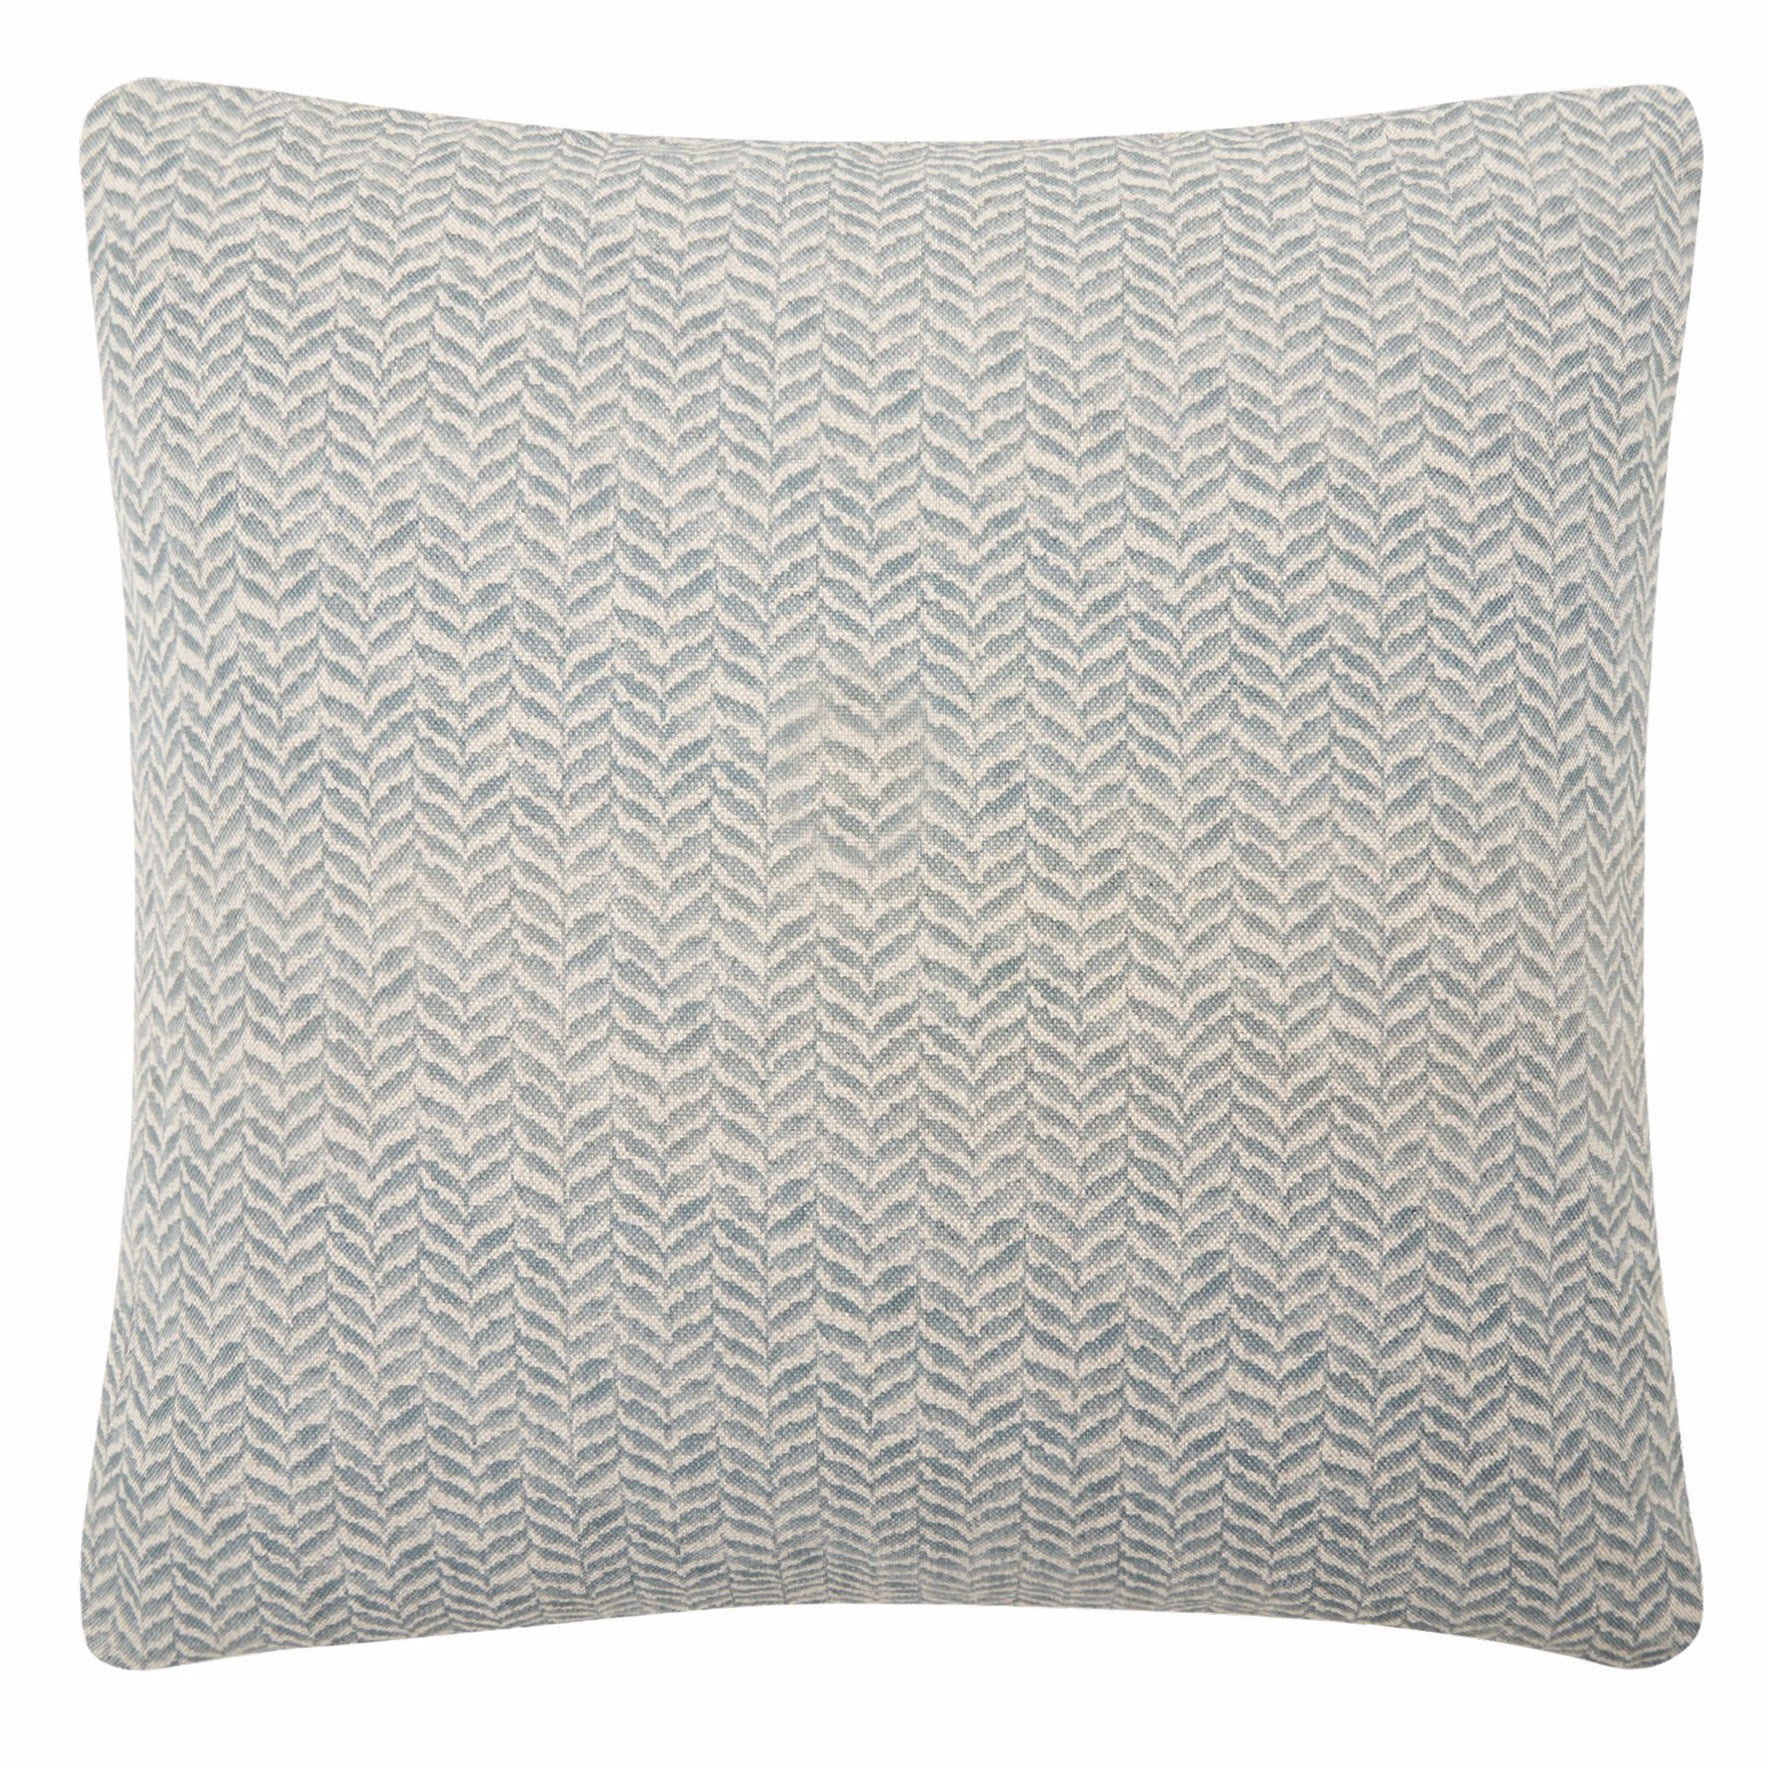 CLOUD Linen 45cm cushion